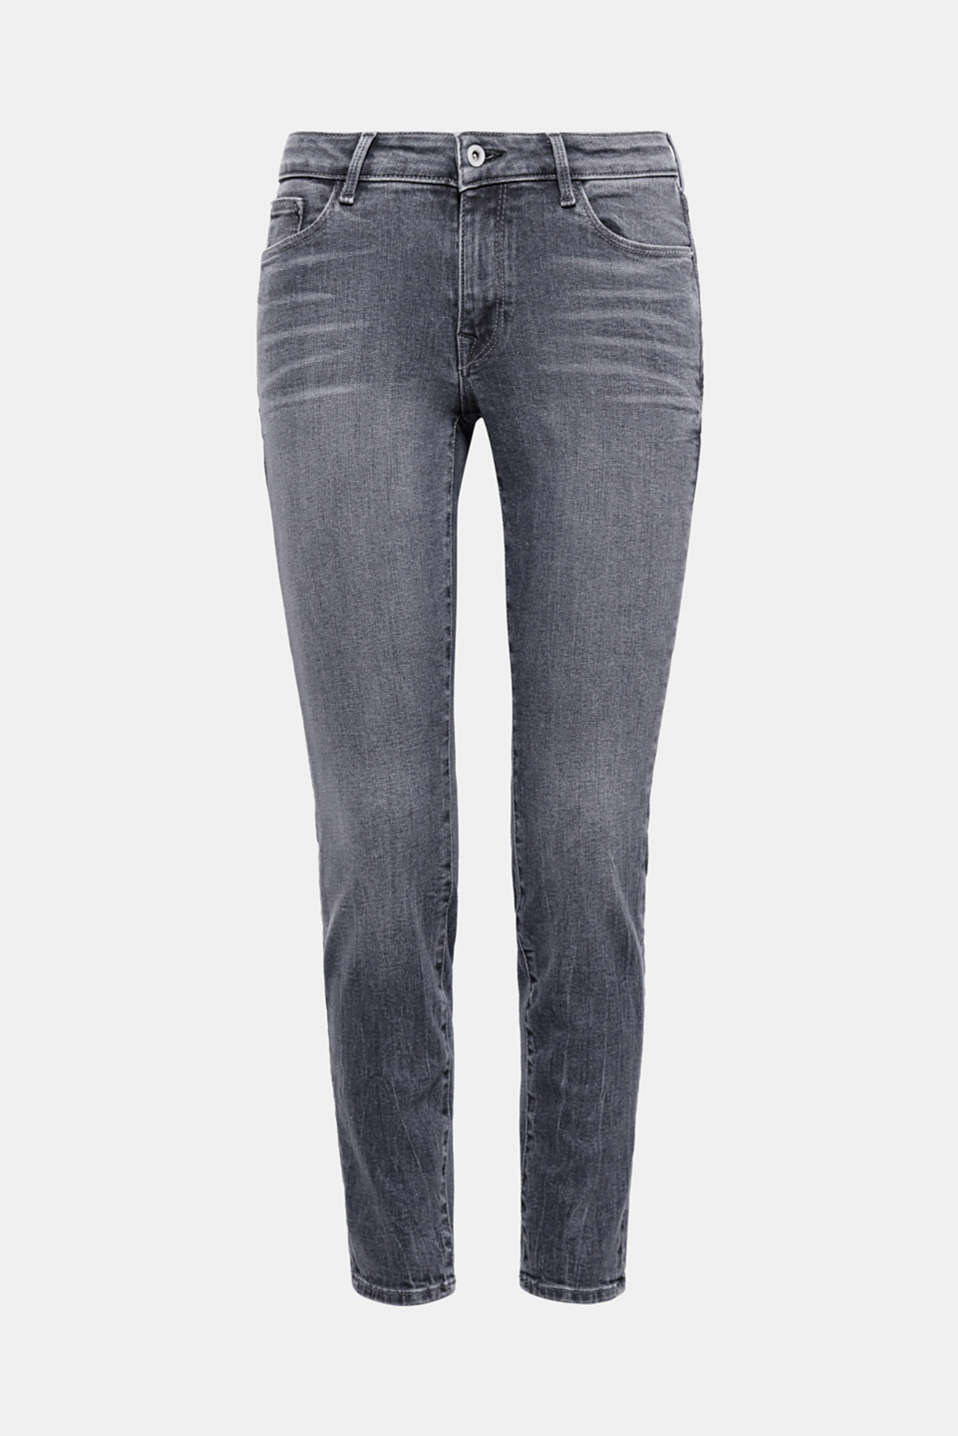 These slim-fitting jeans in a trendy grey tone are made of garment-washed cotton denim with a percentage of stretch.